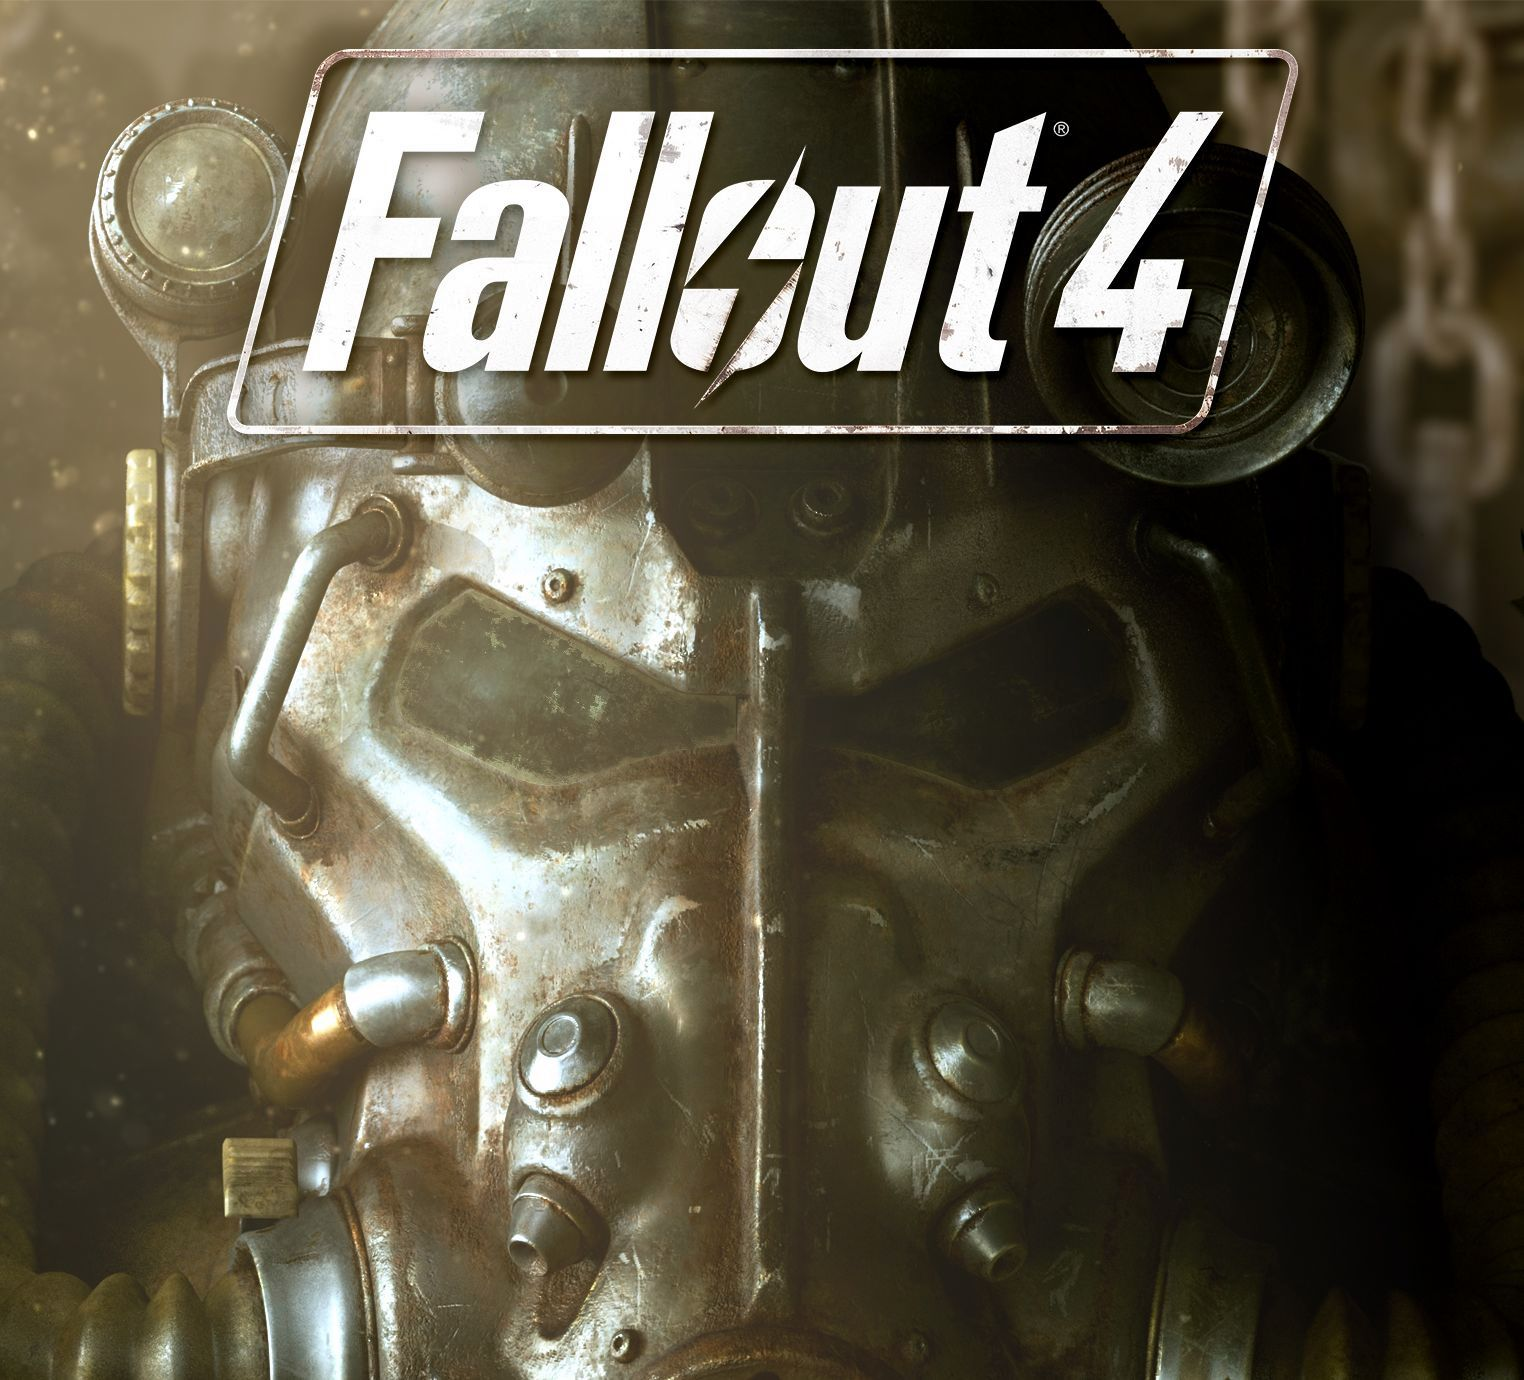 Fallout 4 Quick Codes